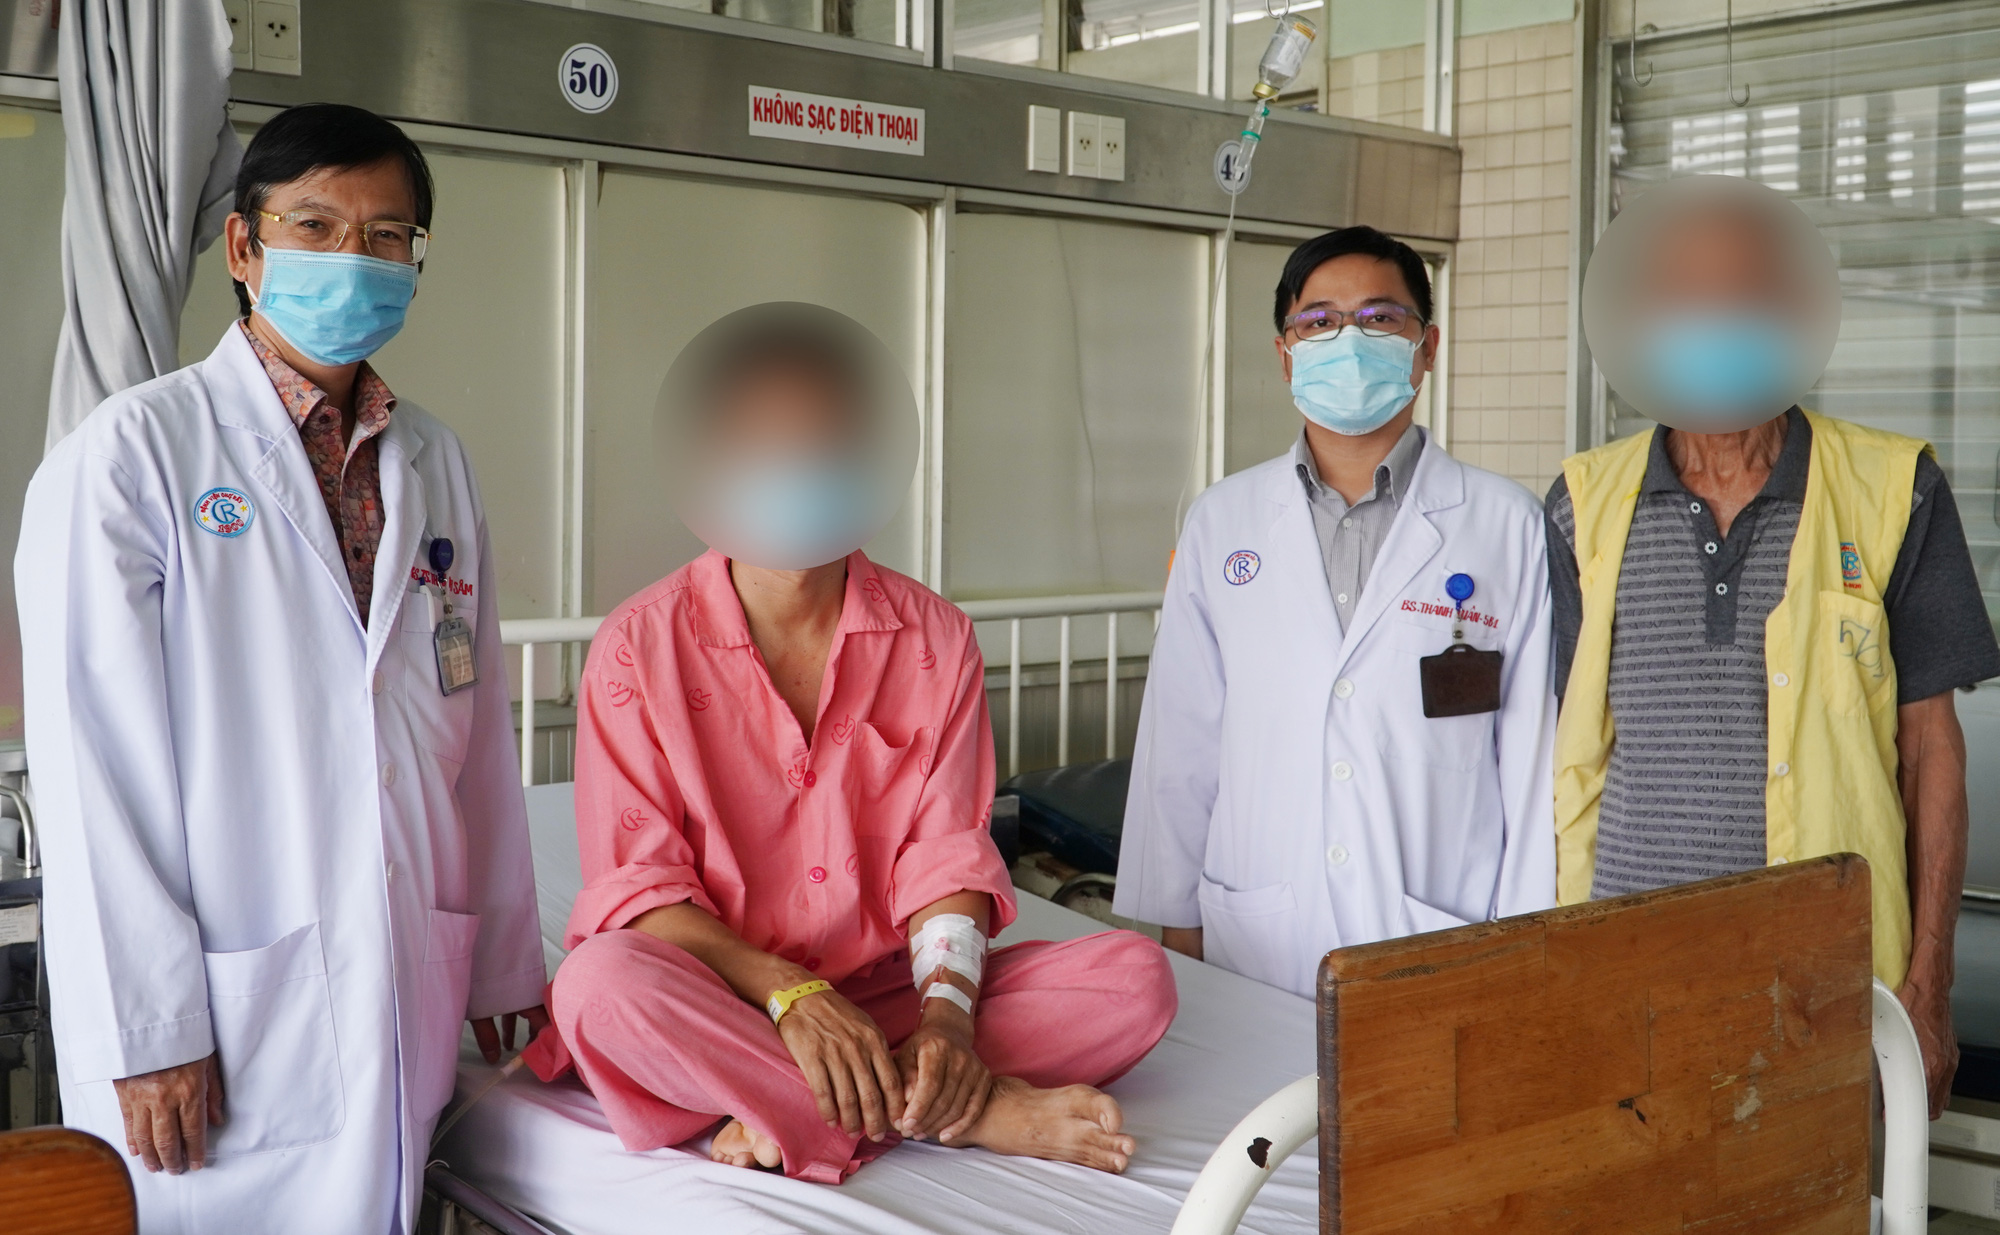 In Vietnam, woman rushes husband to hospital after cutting off his penis